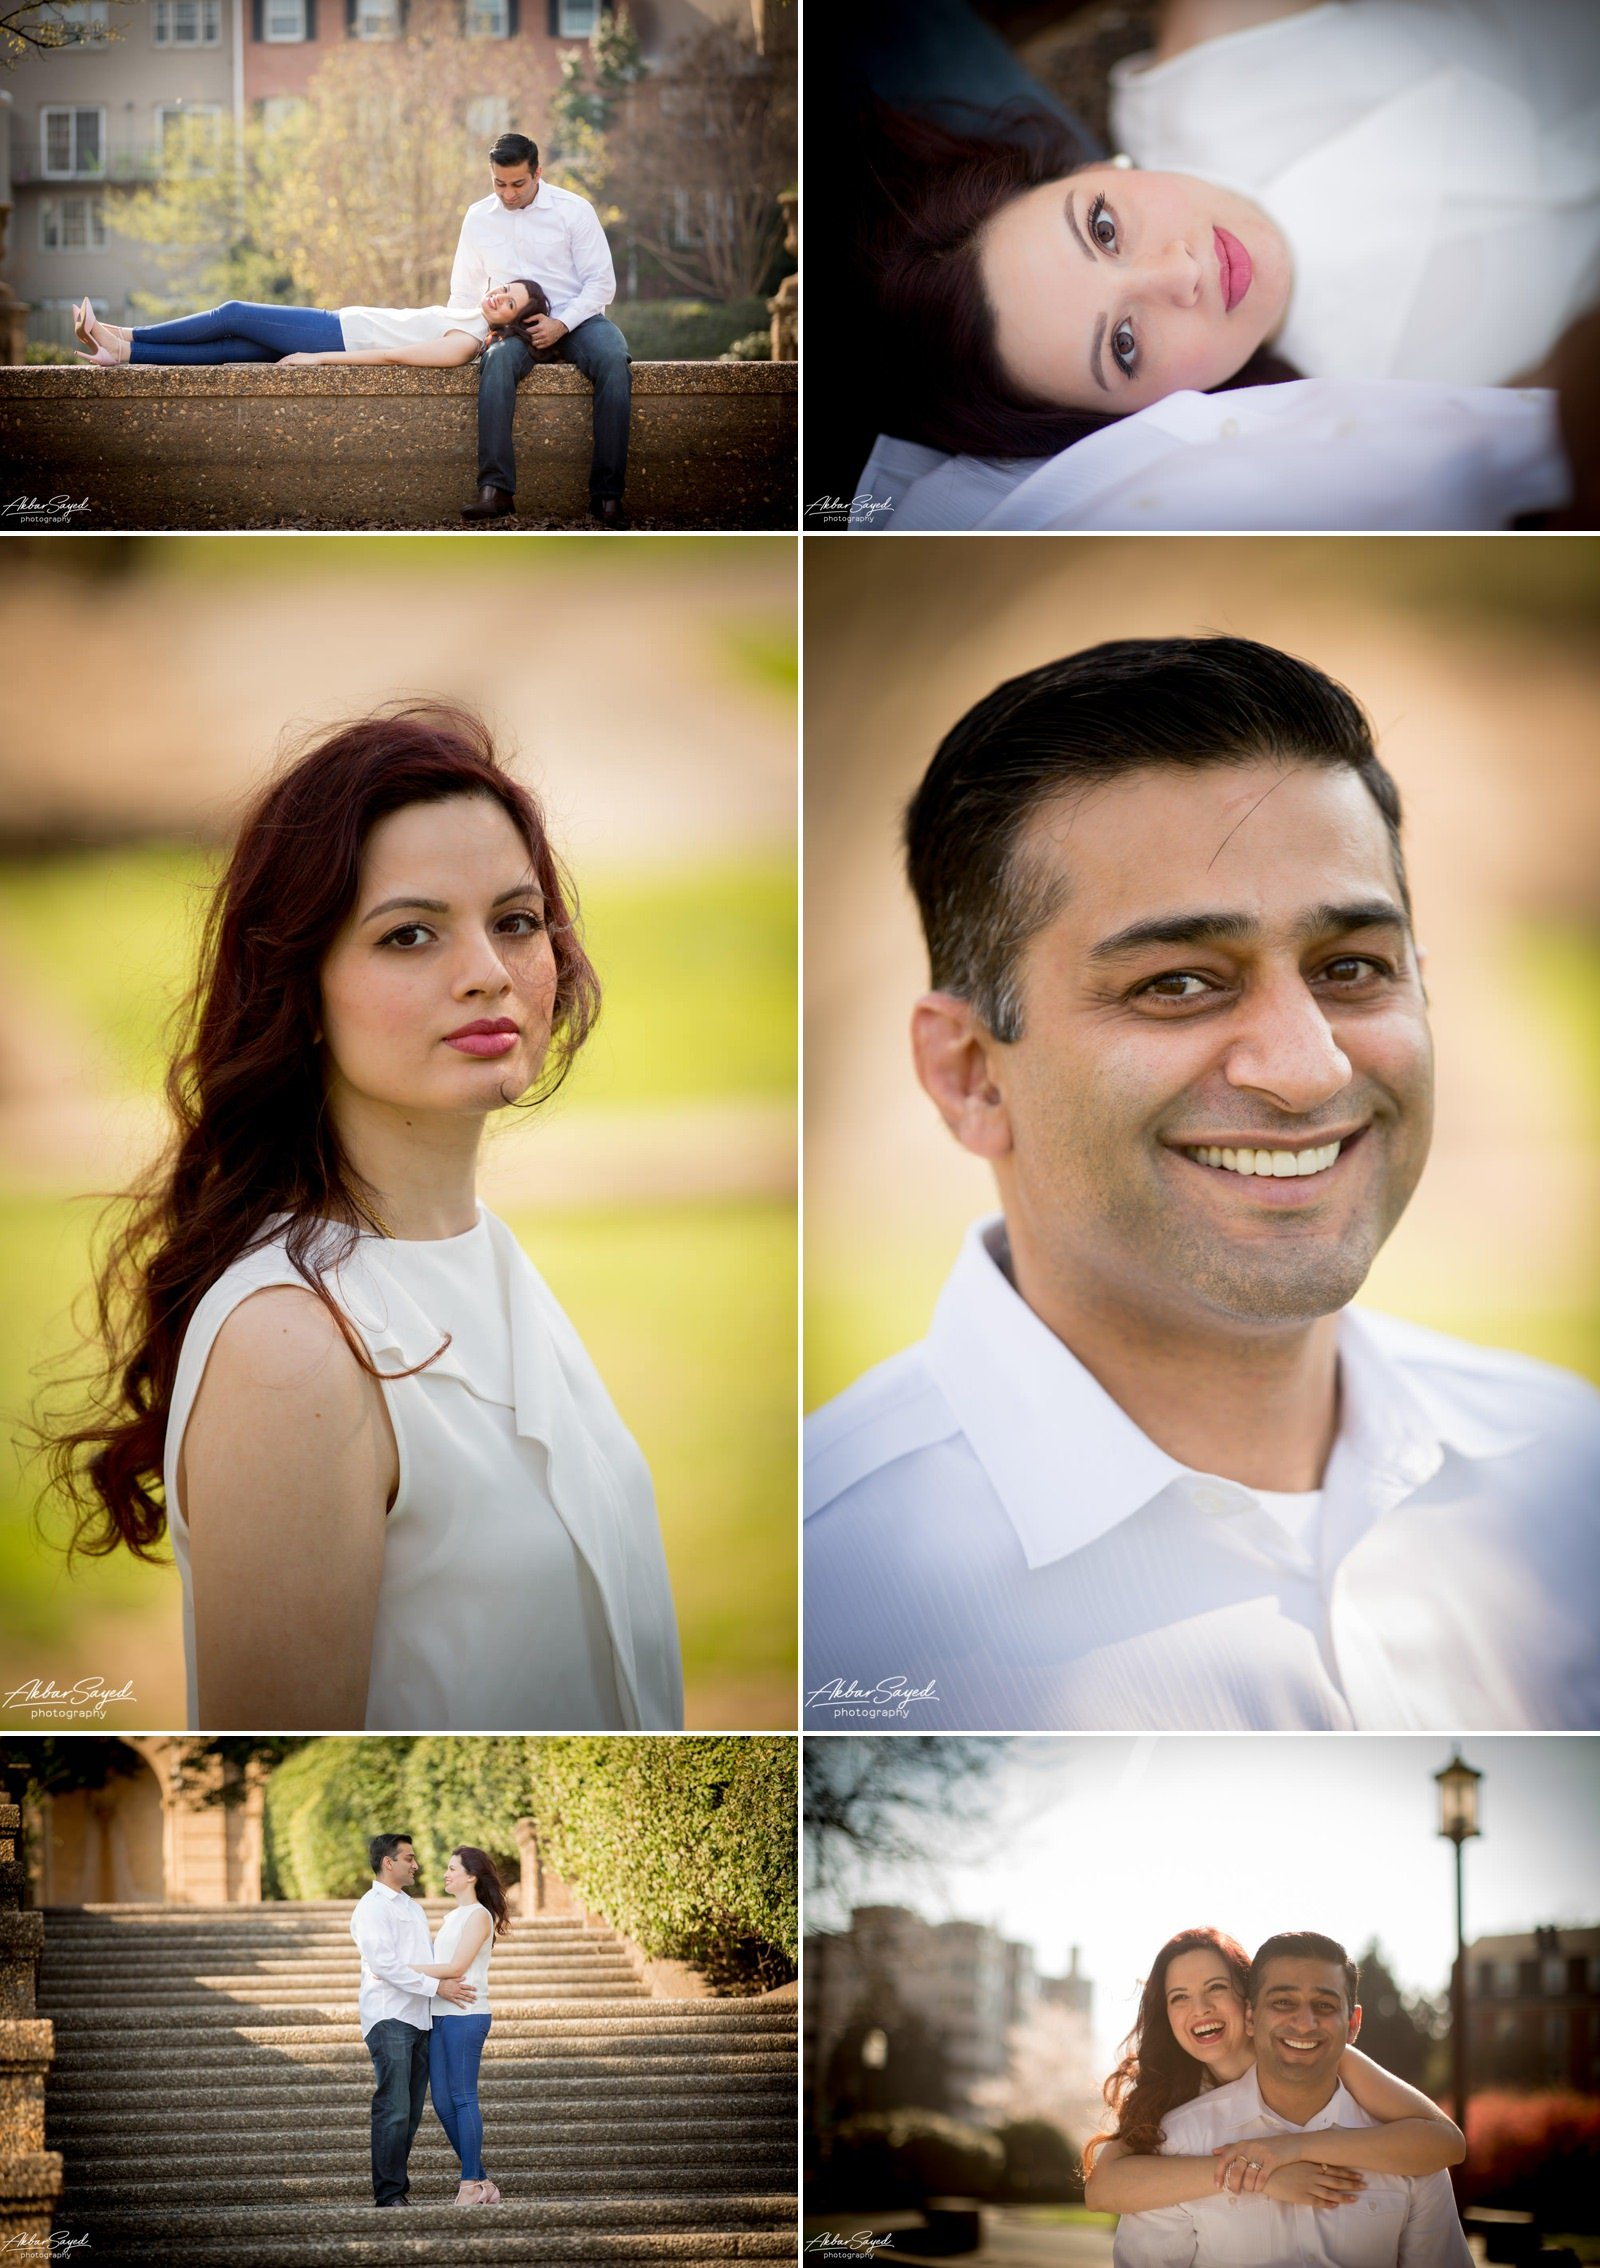 A collage of couples portraits on their anniversary at Meridian Hill Park in Washington D.C.